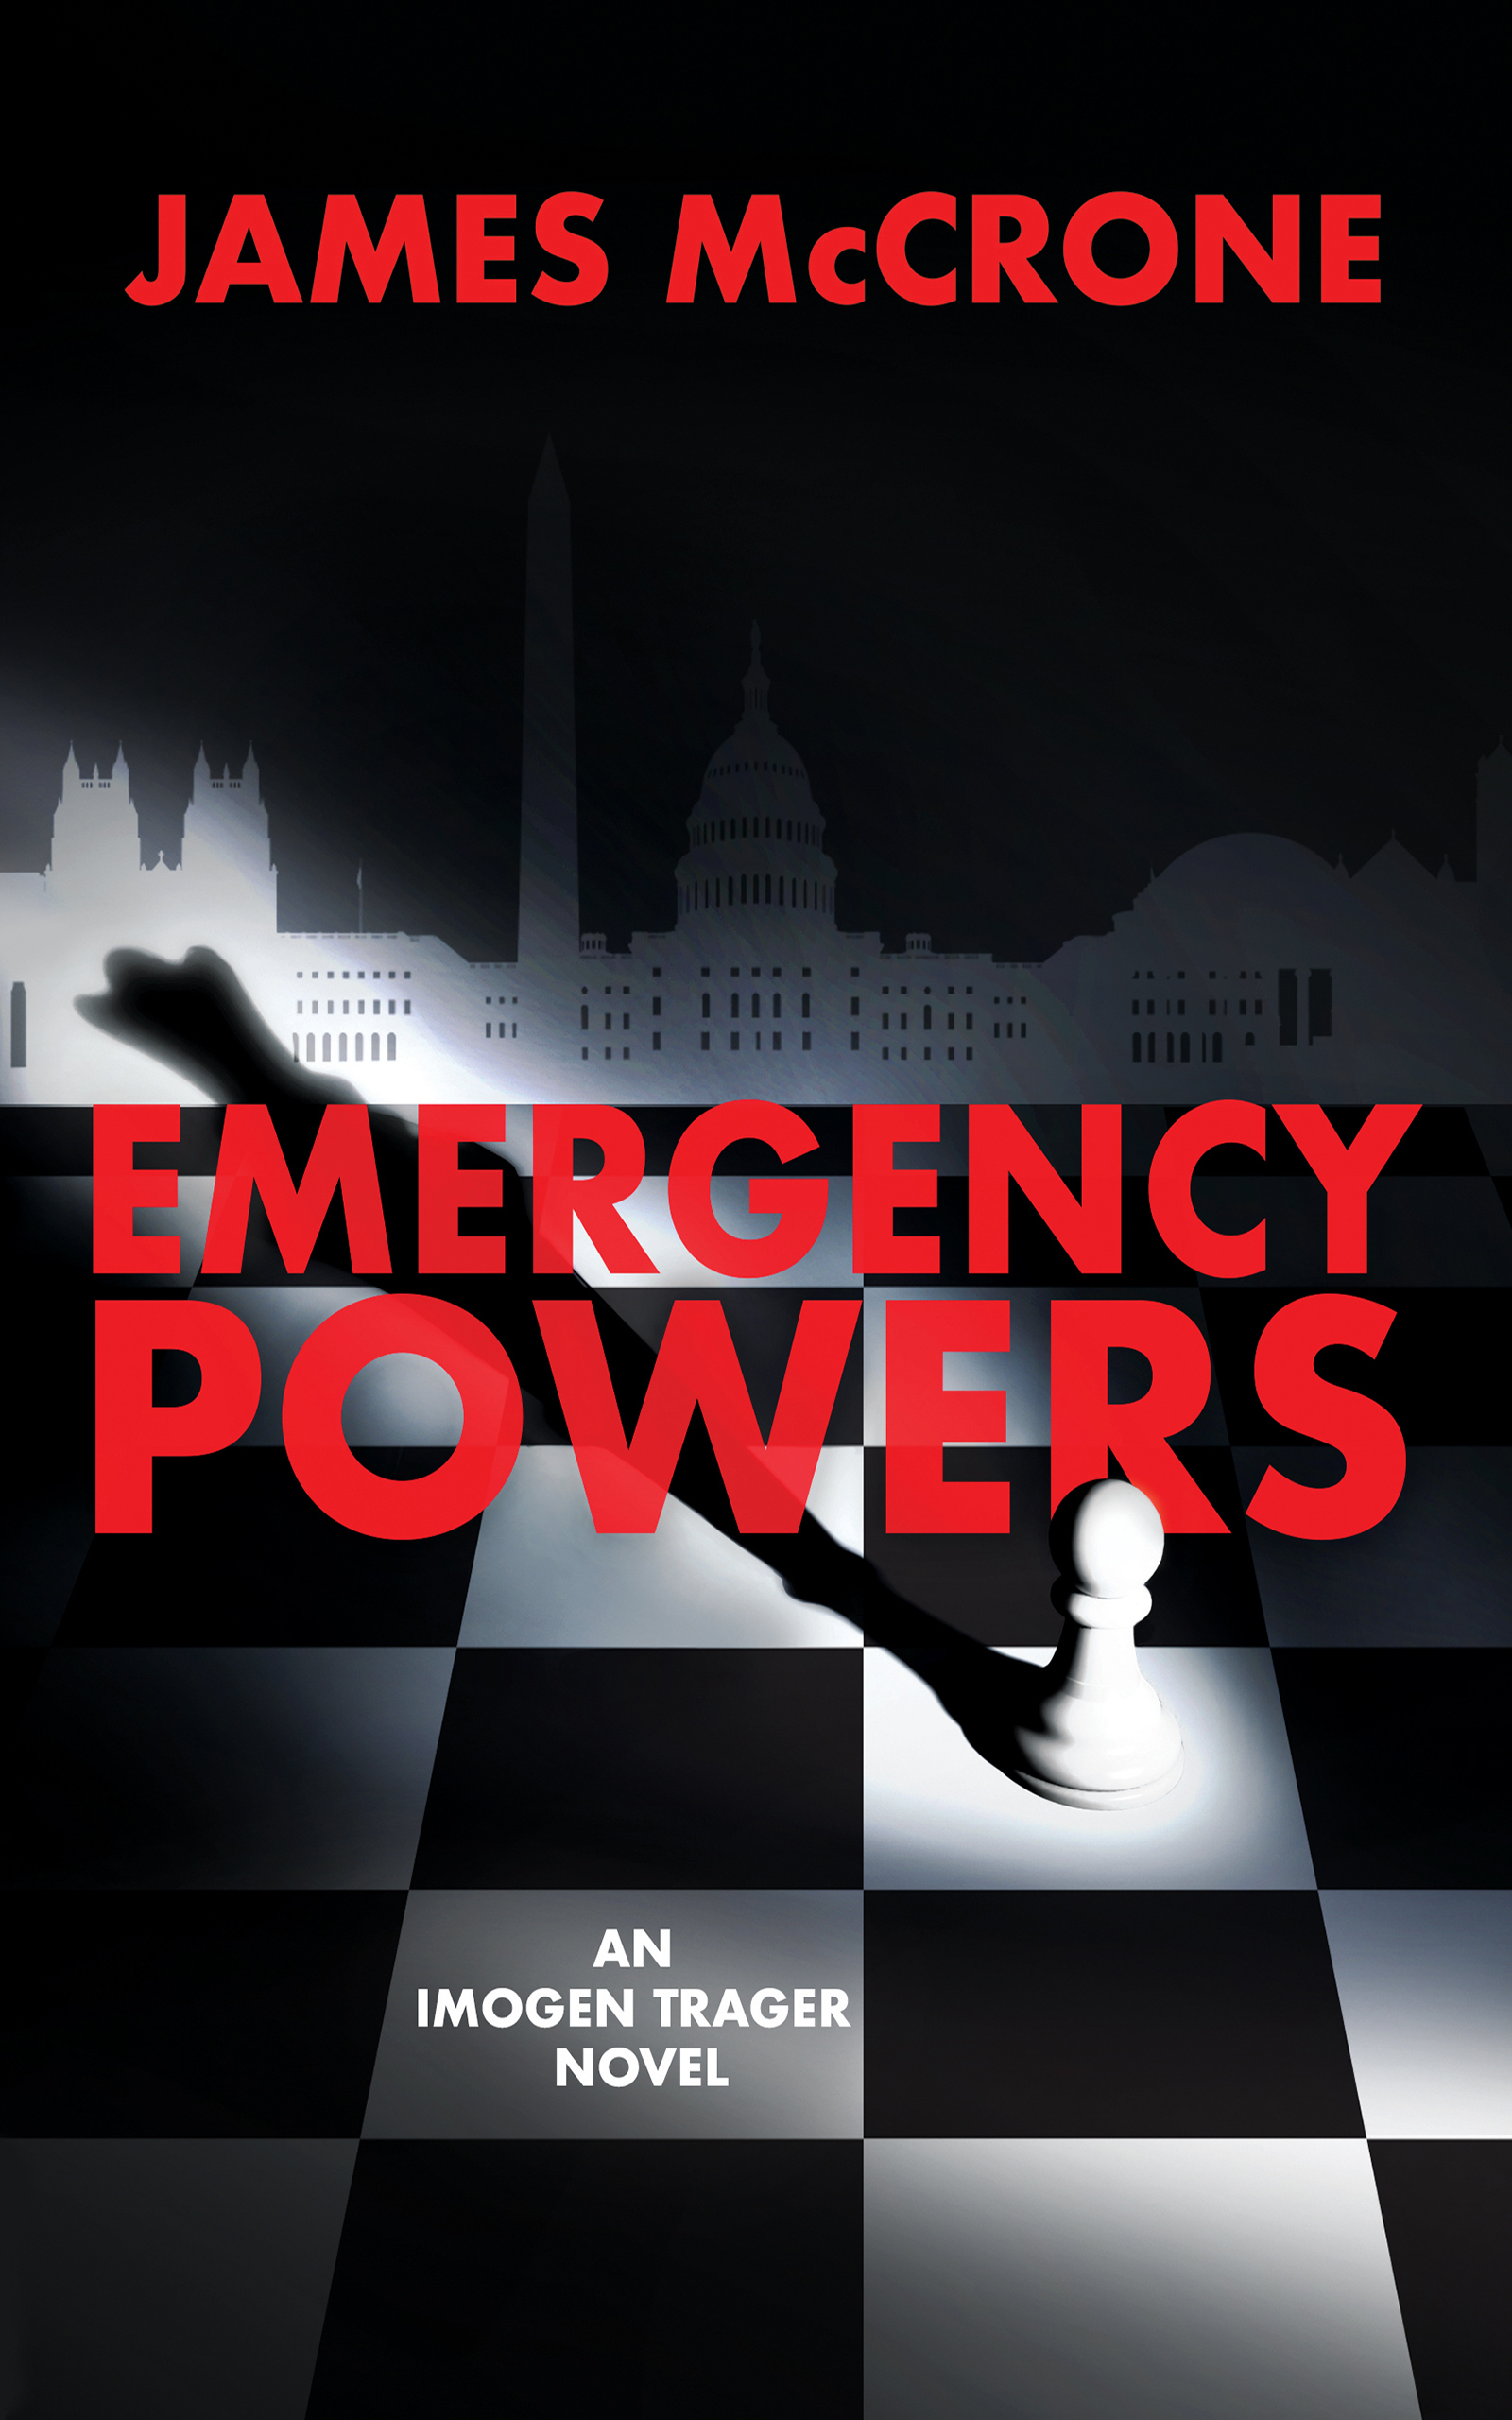 Emergency Powers by James McCrone